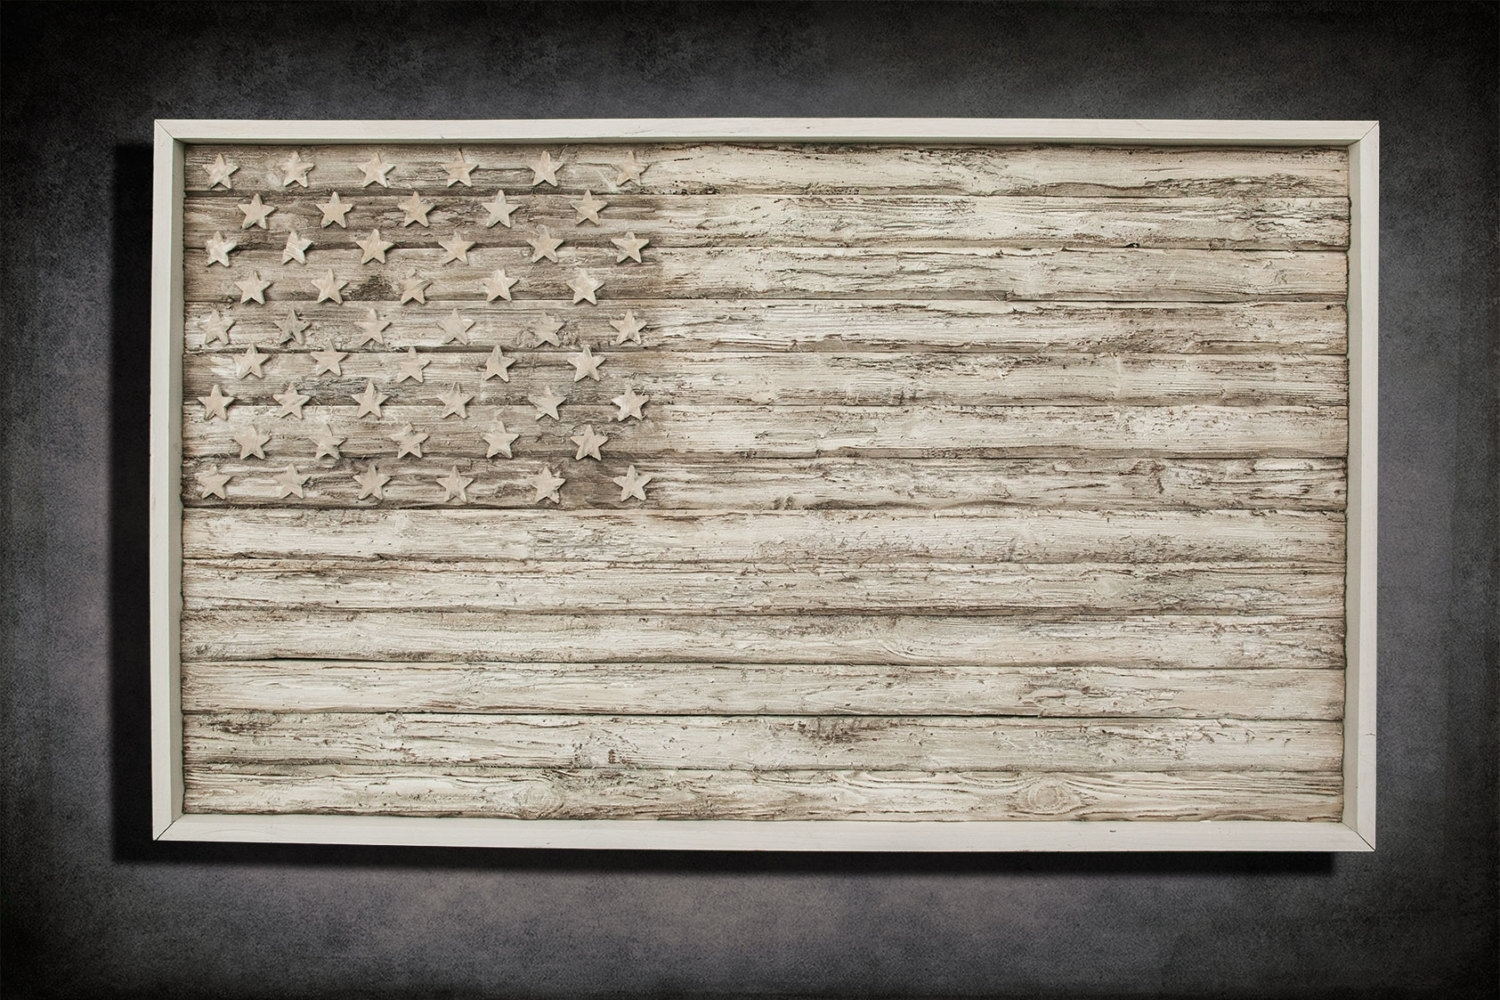 American Flag, Weathered Wood, One Of A Kind, 3D, Wooden, Vintage With Latest Wooden American Flag Wall Art (View 6 of 20)